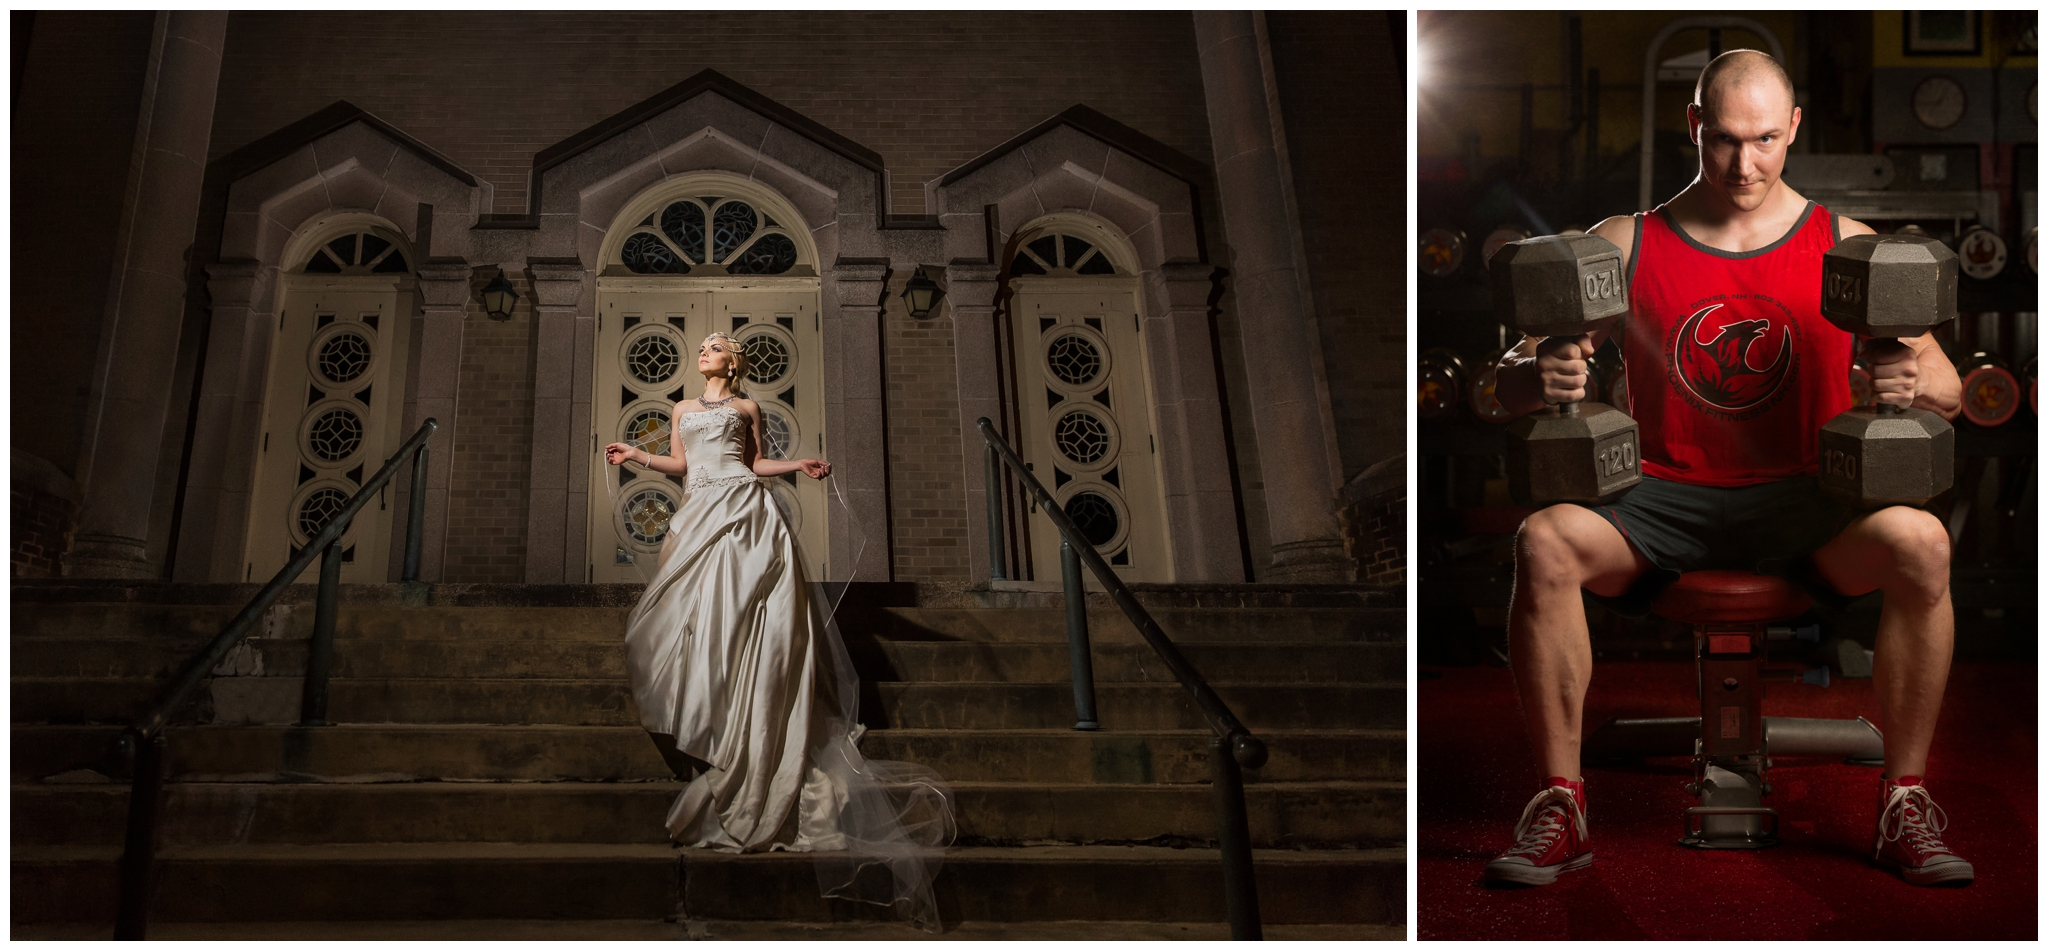 Awesome lighting and backdrops are a hallmark of the artwork created at Chris Keeley Photography. Let's combine the fashion of wedding photography and the dramatic lighting of fitness photography to create epic senior pictures.